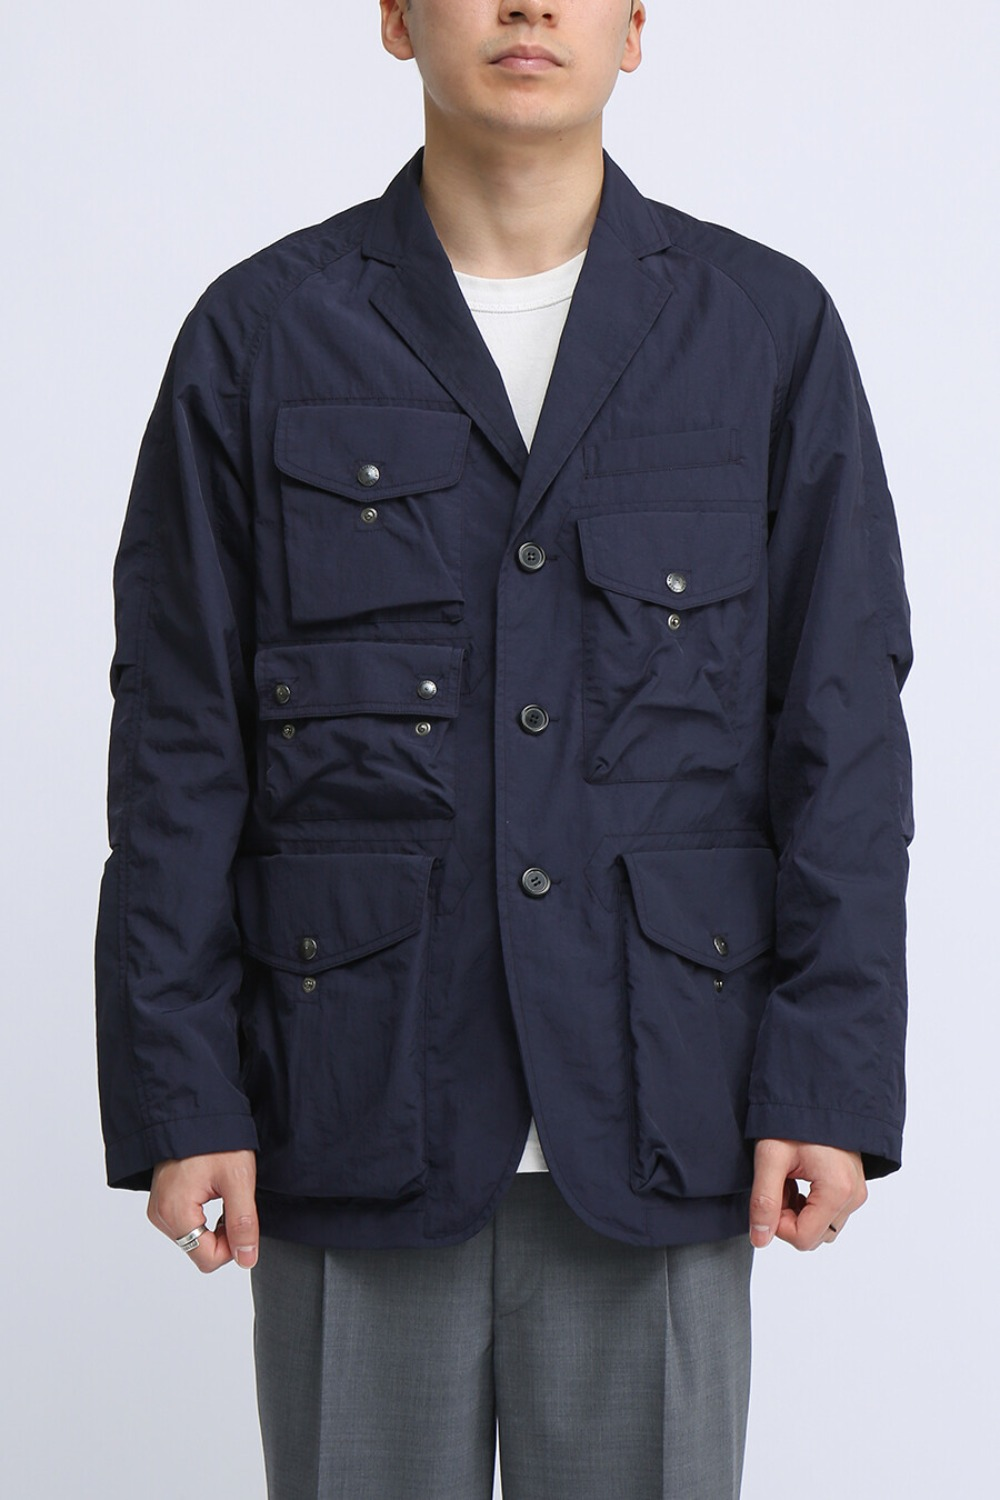 TREKKING JACKET NAVY NYLON WASHER